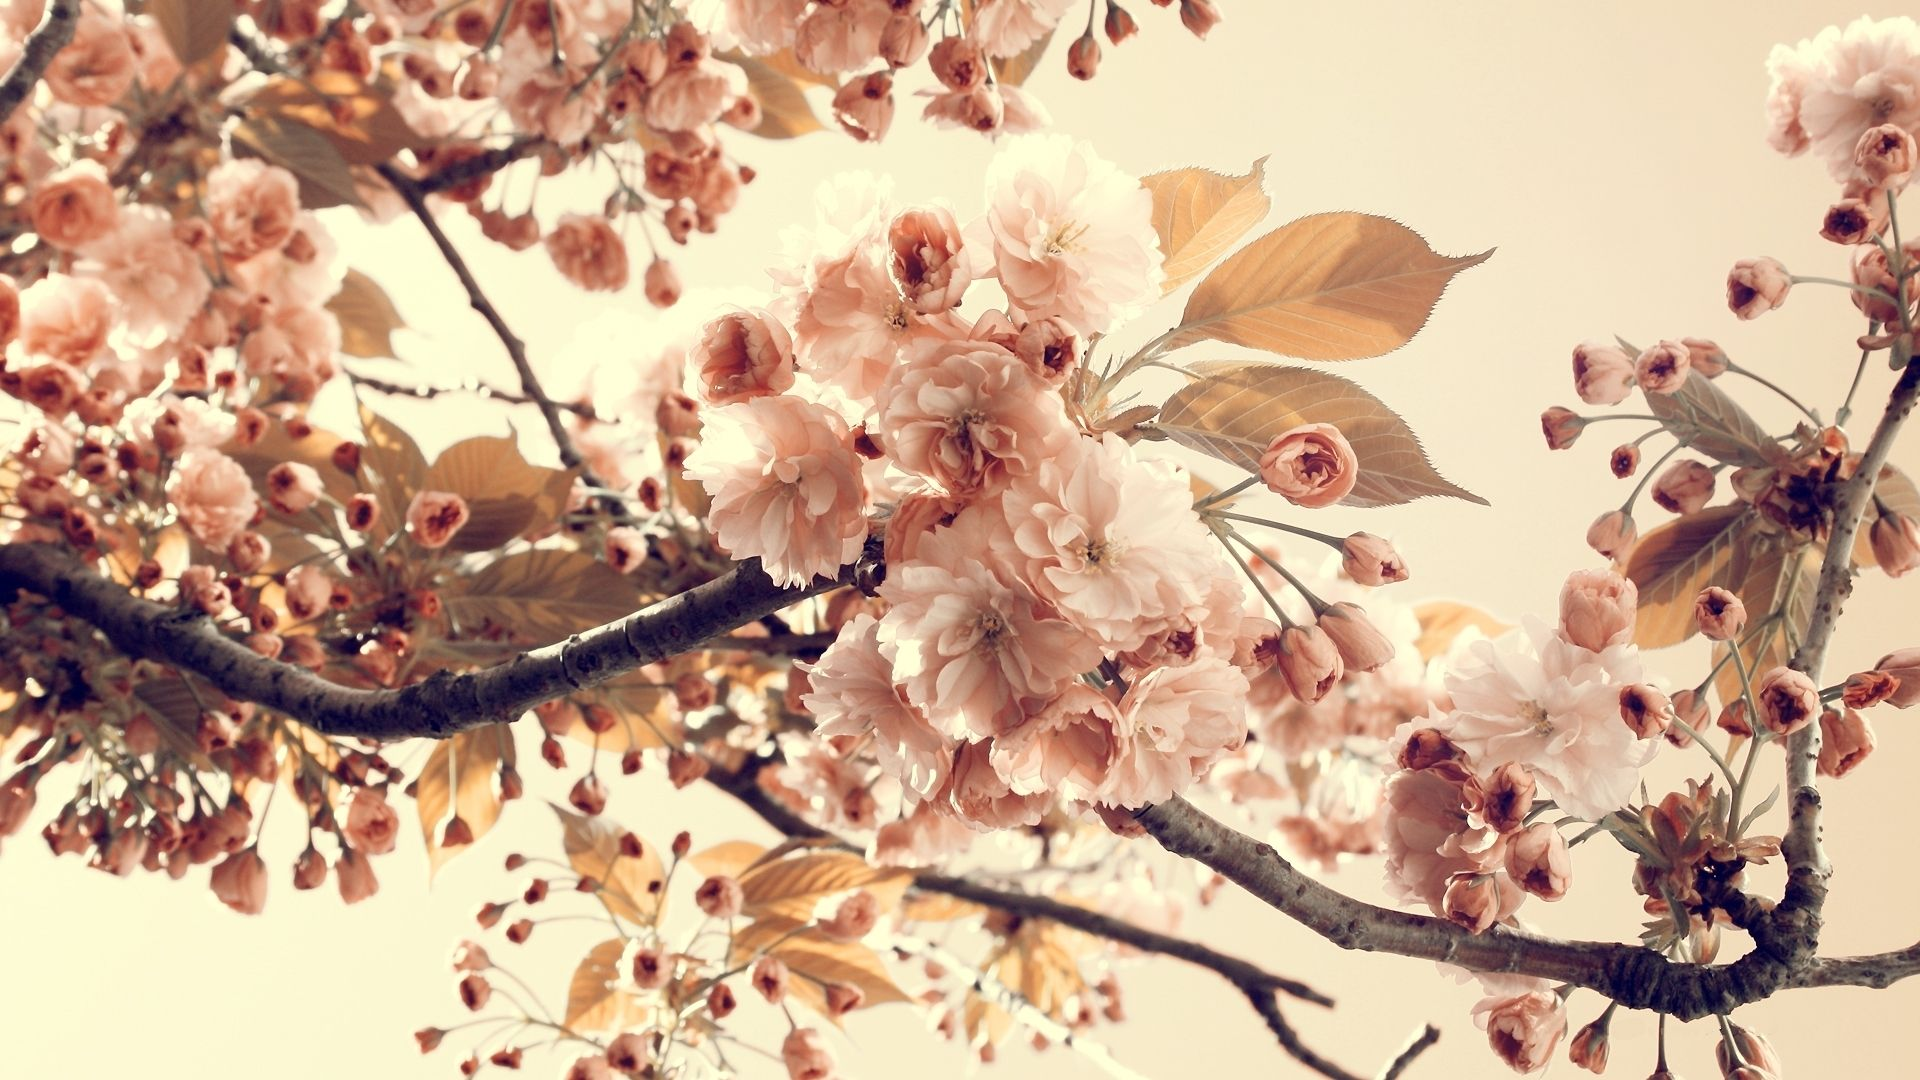 Vintage wallpaper flowers  Vintage Flowers #1 | Vintage Photos | Pinterest | Cherry blossom ...